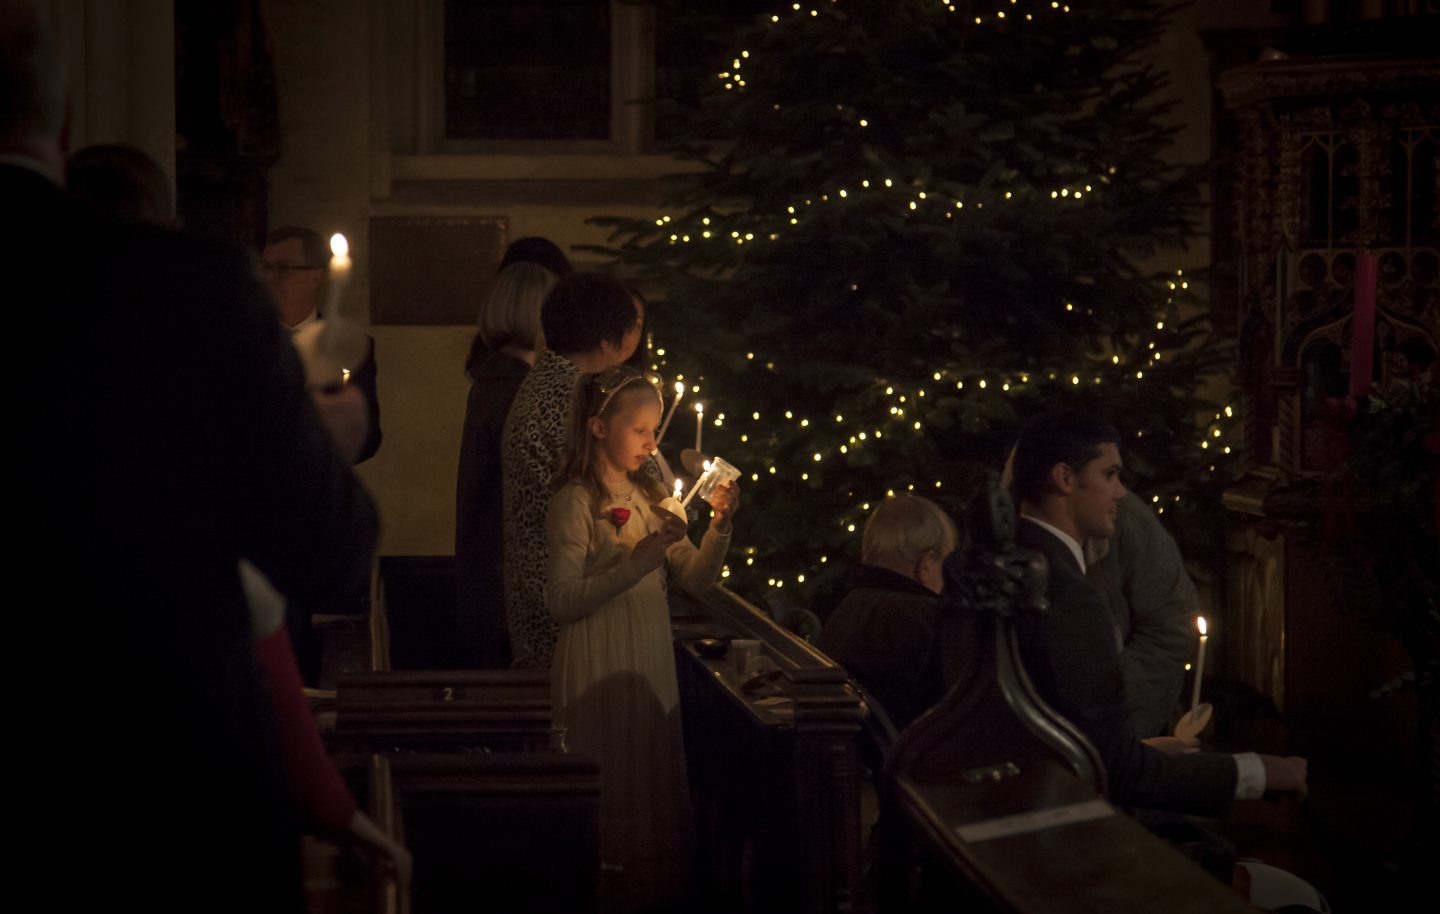 A Carol Service to remember